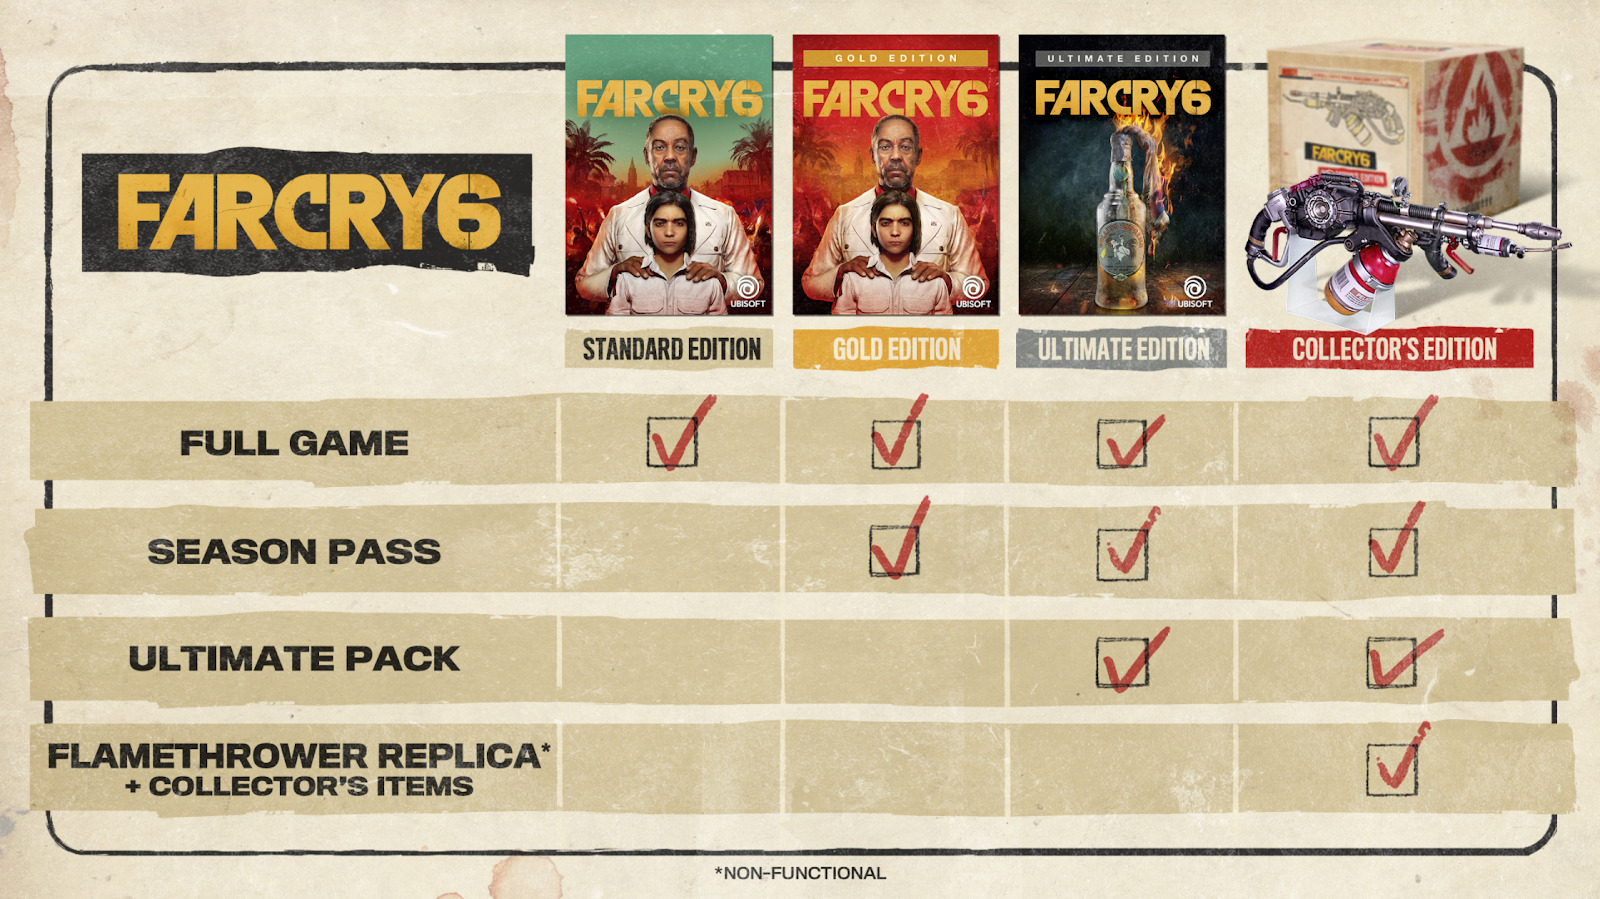 farcry 6 cast what is farcry 6 about farcry 6 plot best deer hunting spots in farcry 6 brietbart farcry 6 crafting in farcry 6 easiest place to find pronghorns farcry 6 buy farcy 6 farcry6 fc6 steamkey epic key allkeyshop farcry 6 ghost command farcry 6 how to get genas car farcry 6 leak farcry 6 location farcry 6 metacritic farcry 6 nana voice actor farcry 6 new dawn cost farcry 6 reqirements farcry 6 the good boy farcry 6 walk away ending